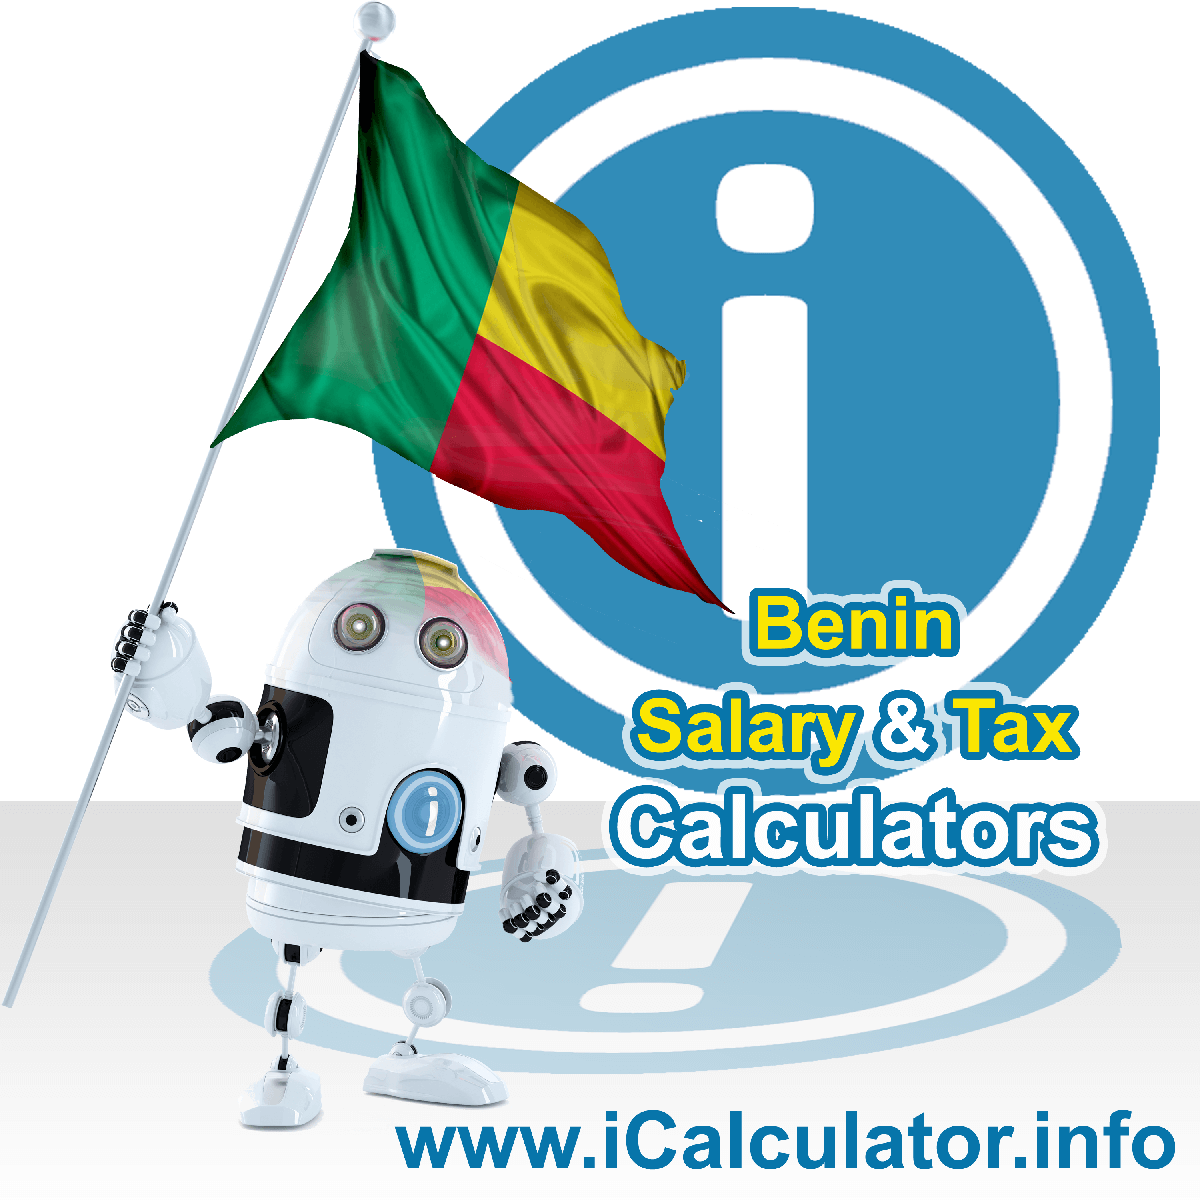 Benin Wage Calculator. This image shows the Benin flag and information relating to the tax formula for the Benin Tax Calculator